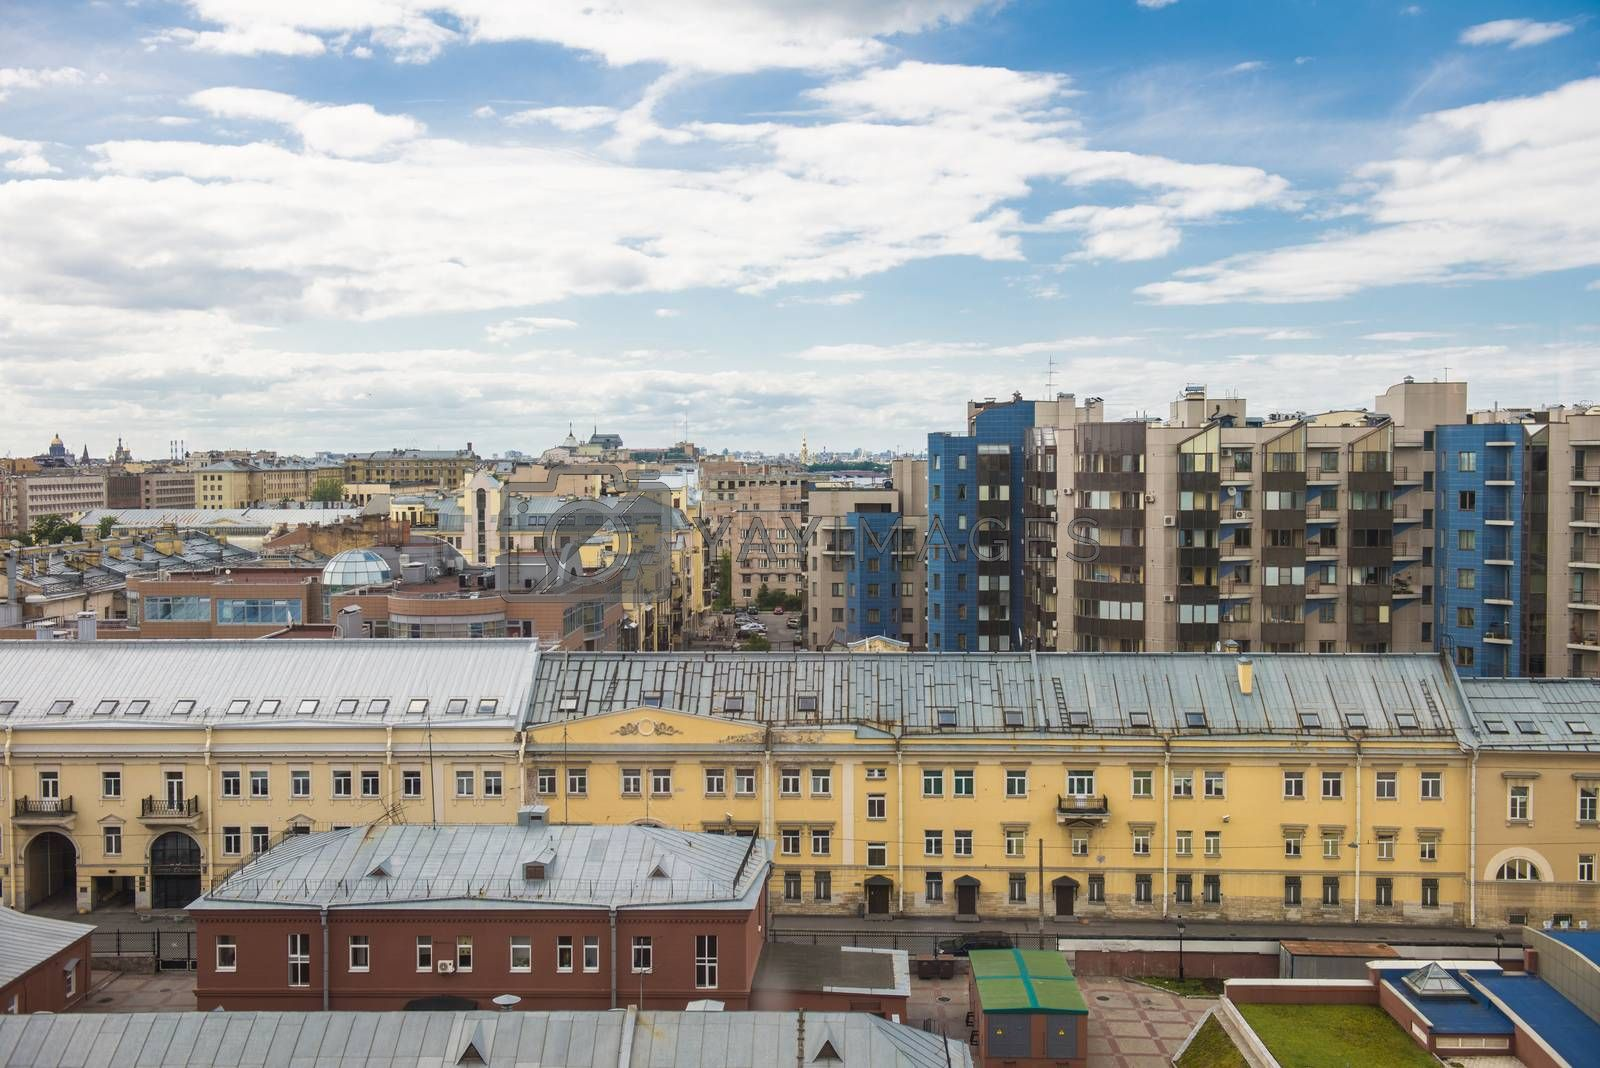 The roofs of Sankt Petersburg, Russia